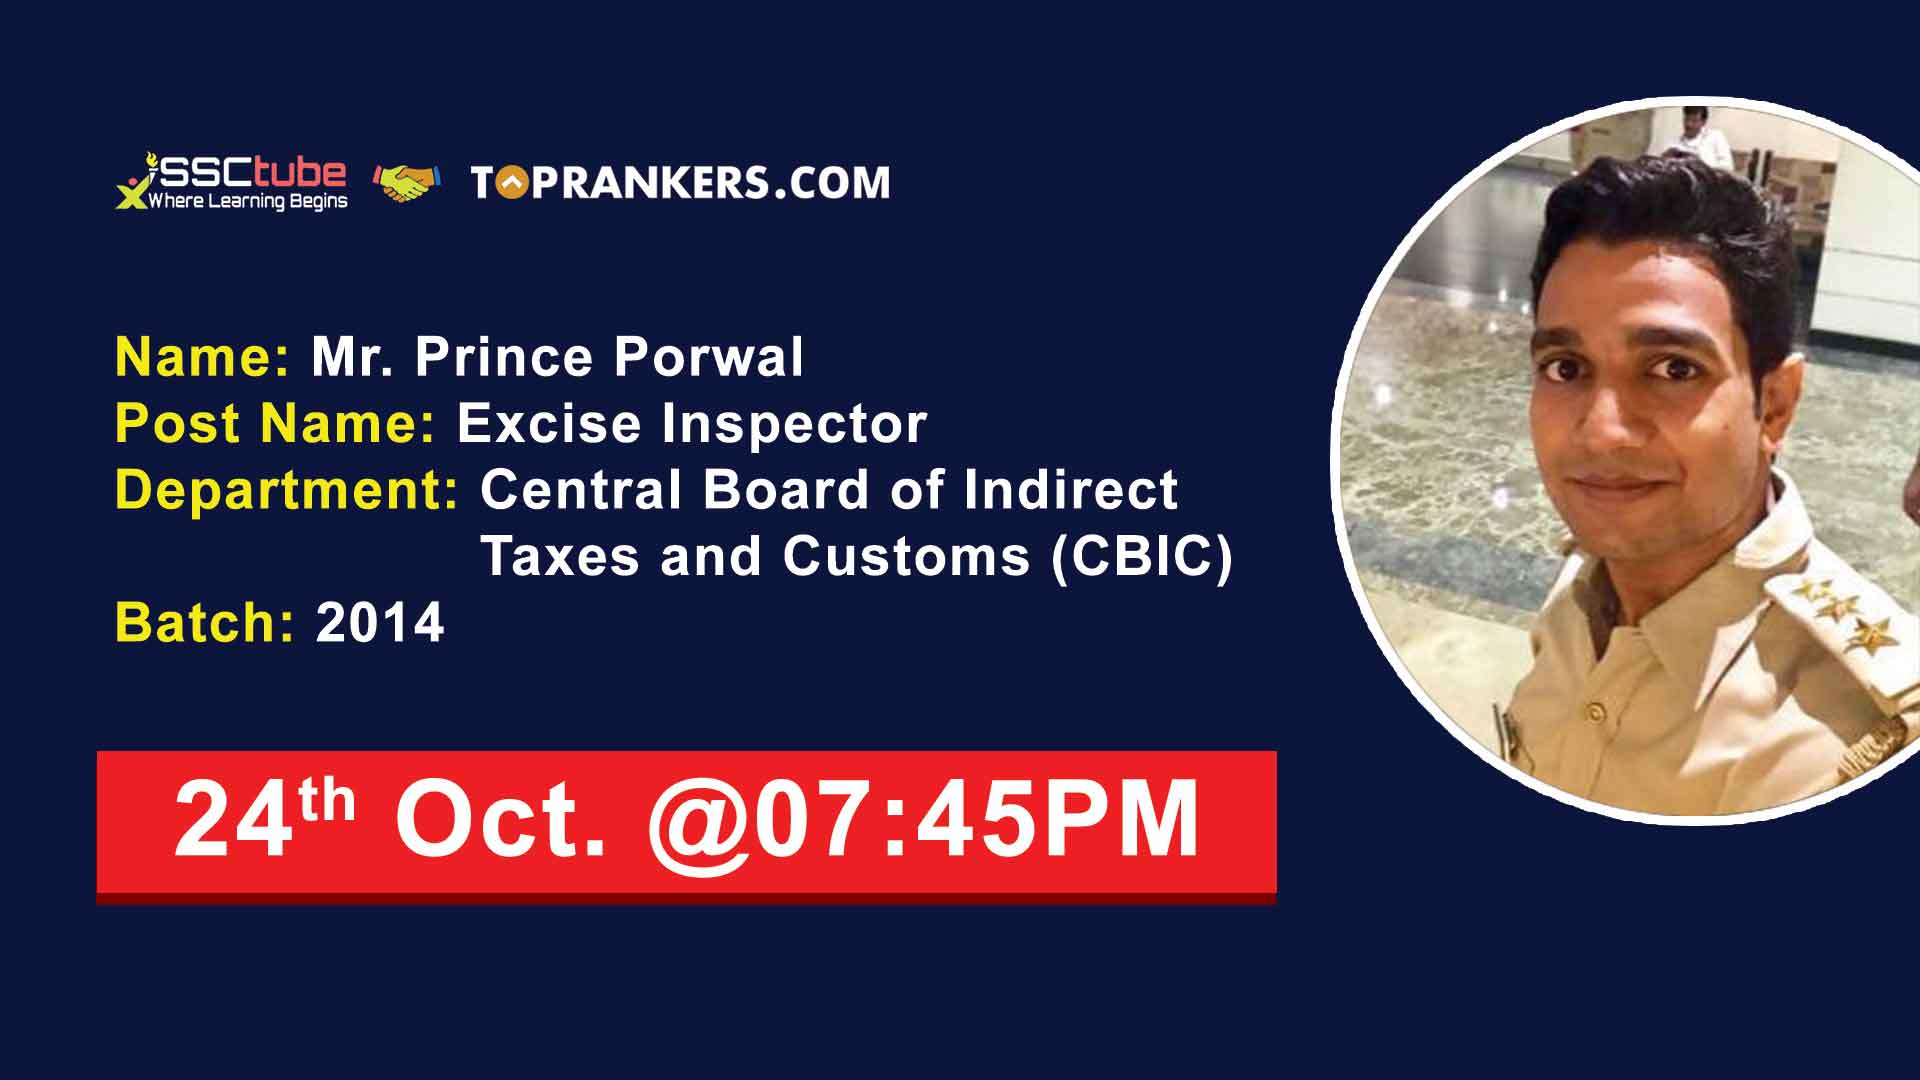 Live Interactive Session with Excise Inspector Mr. Prince Porwal